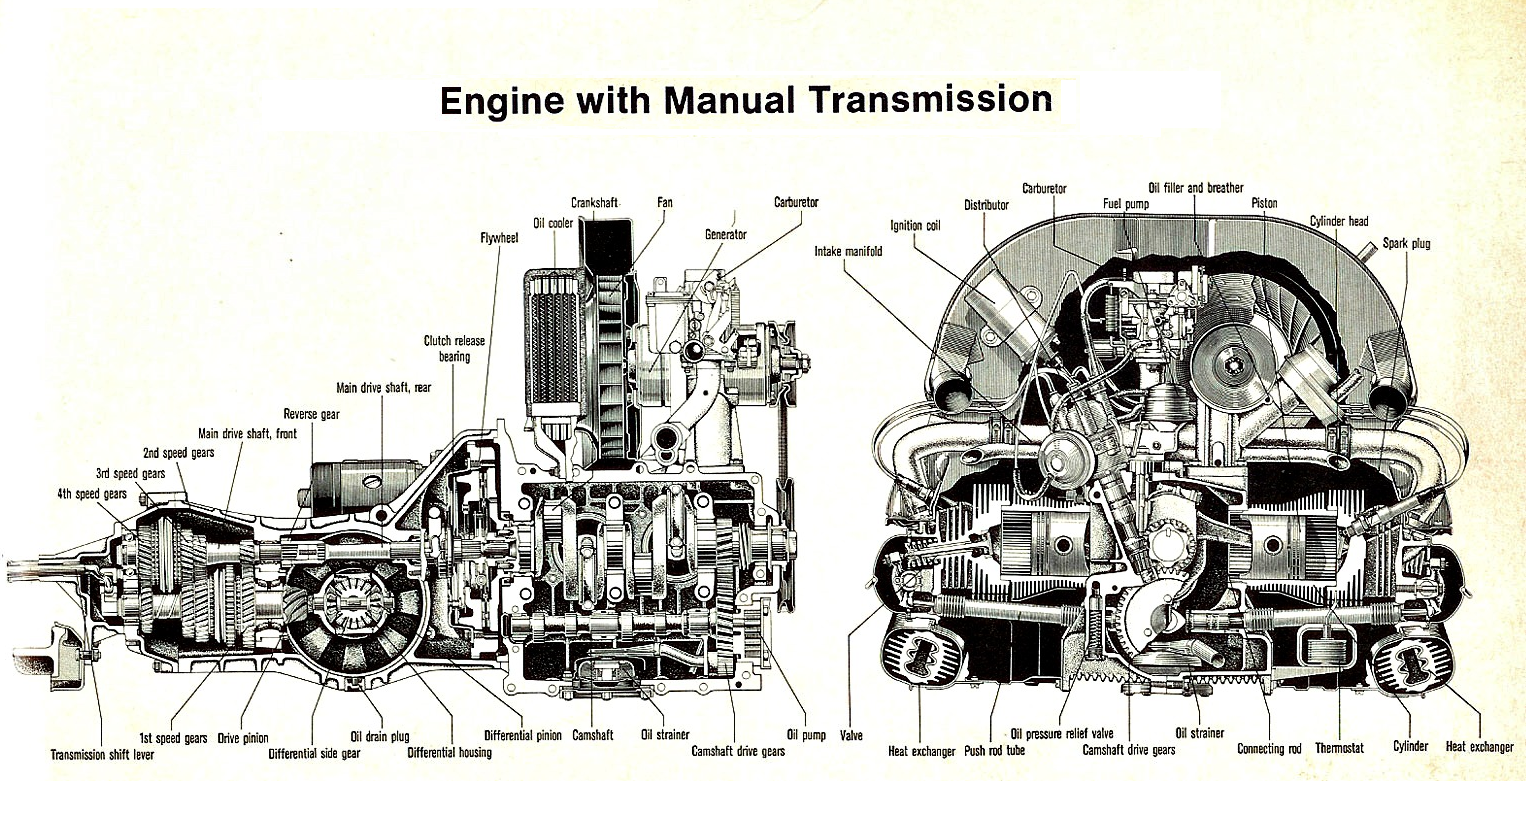 Vw Engine Diagram Just Another Wiring Blog Vr6 Pulley Block Library Rh 73 Codingcommunity De Polo Eos